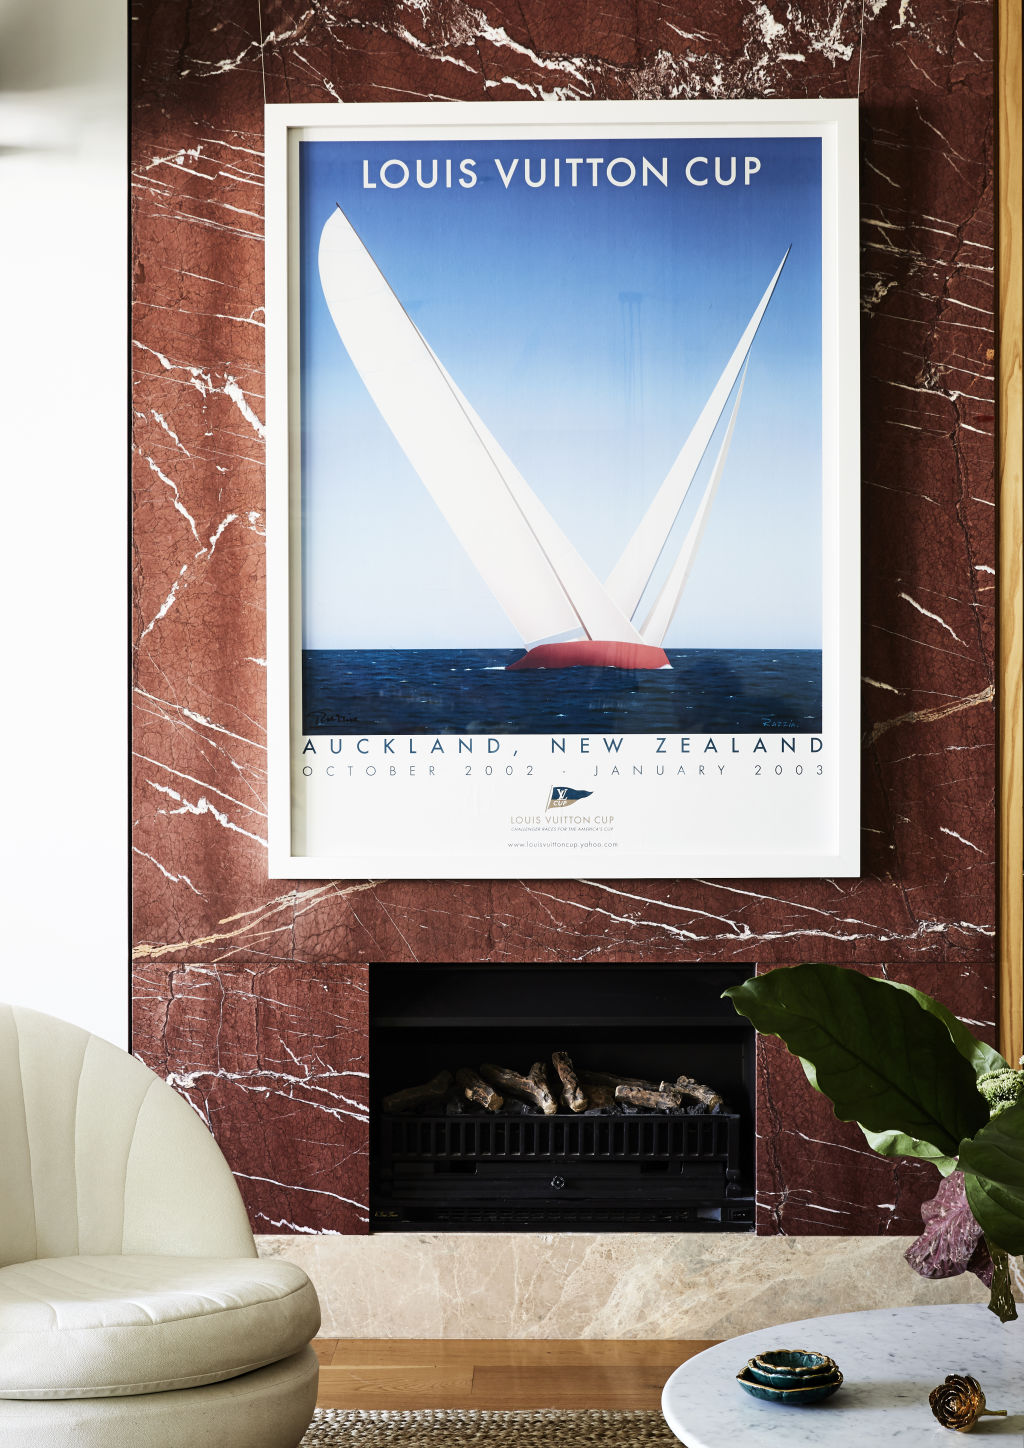 The sitting room. 'My husband loves sailing and this poster was a gift I gave him for his birthday about 10 years ago. It's moved around with him, and has a lovely family connection', Deborah says. Styling: Annie Portelli.